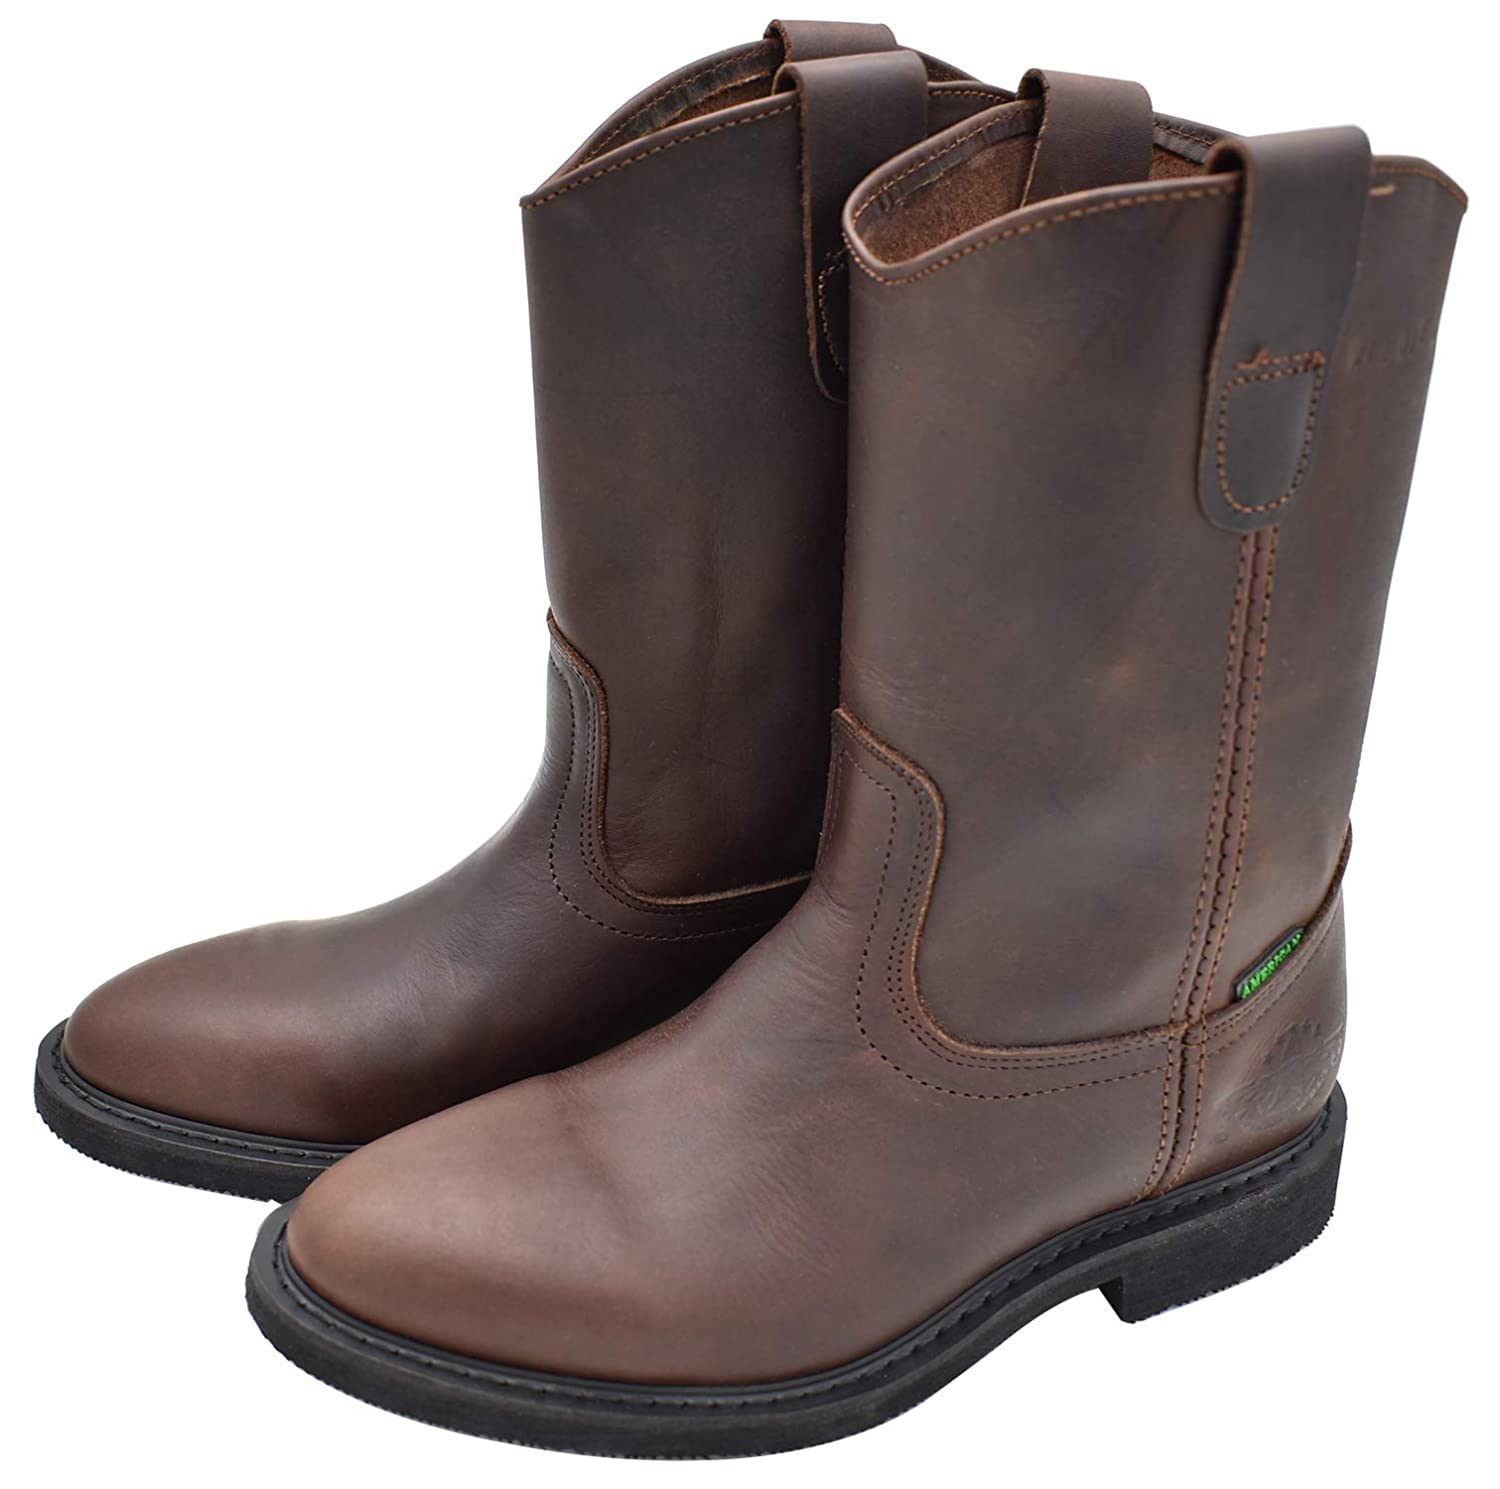 b733a874ae5 Amazon.com | American Welt Western Cowboy Boots for Men Casual Full ...